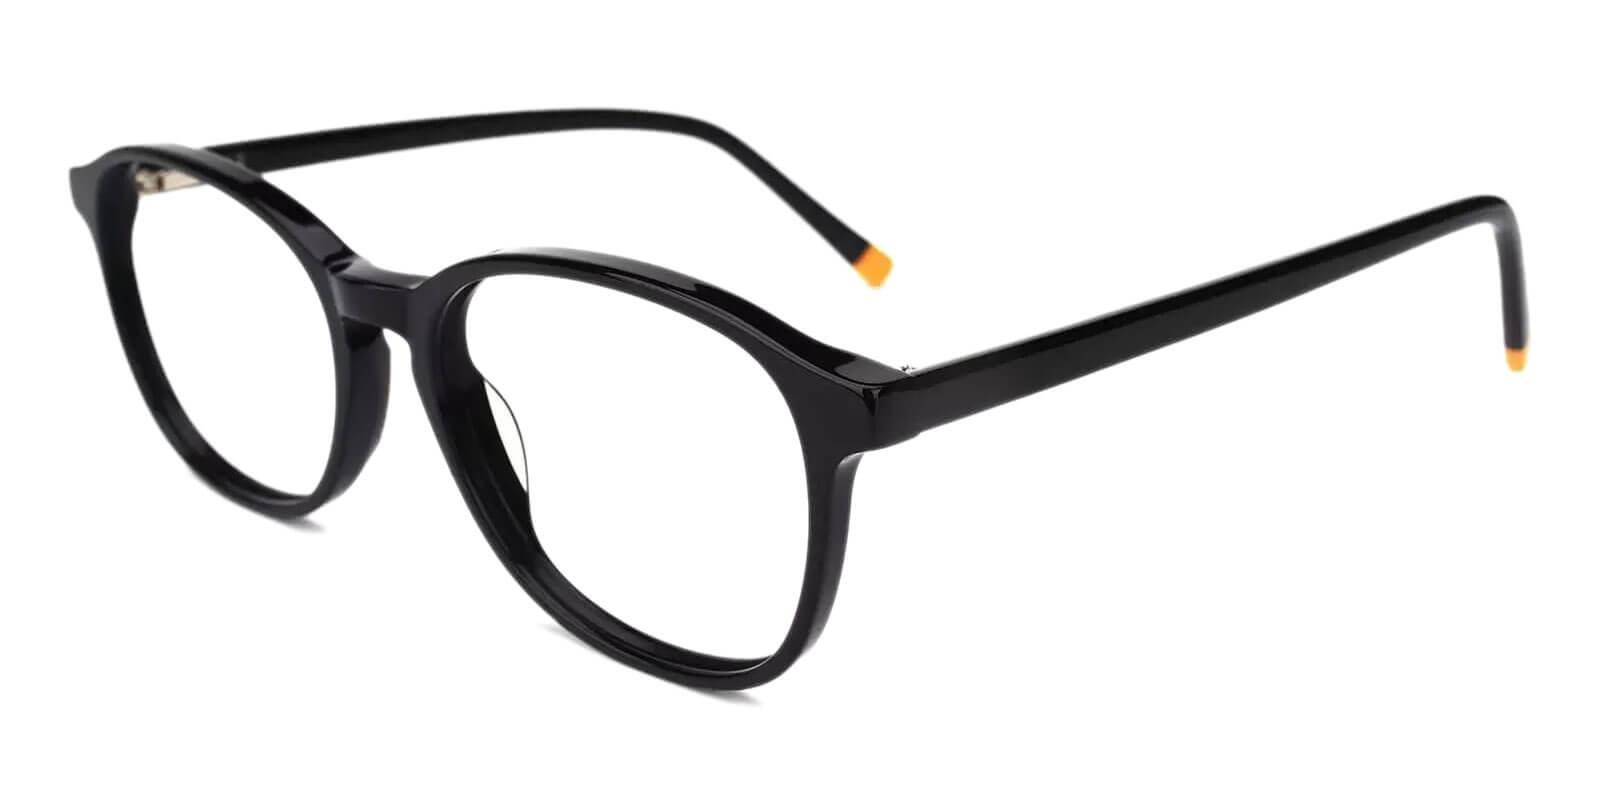 Brunei Black Acetate Eyeglasses , SpringHinges , UniversalBridgeFit Frames from ABBE Glasses